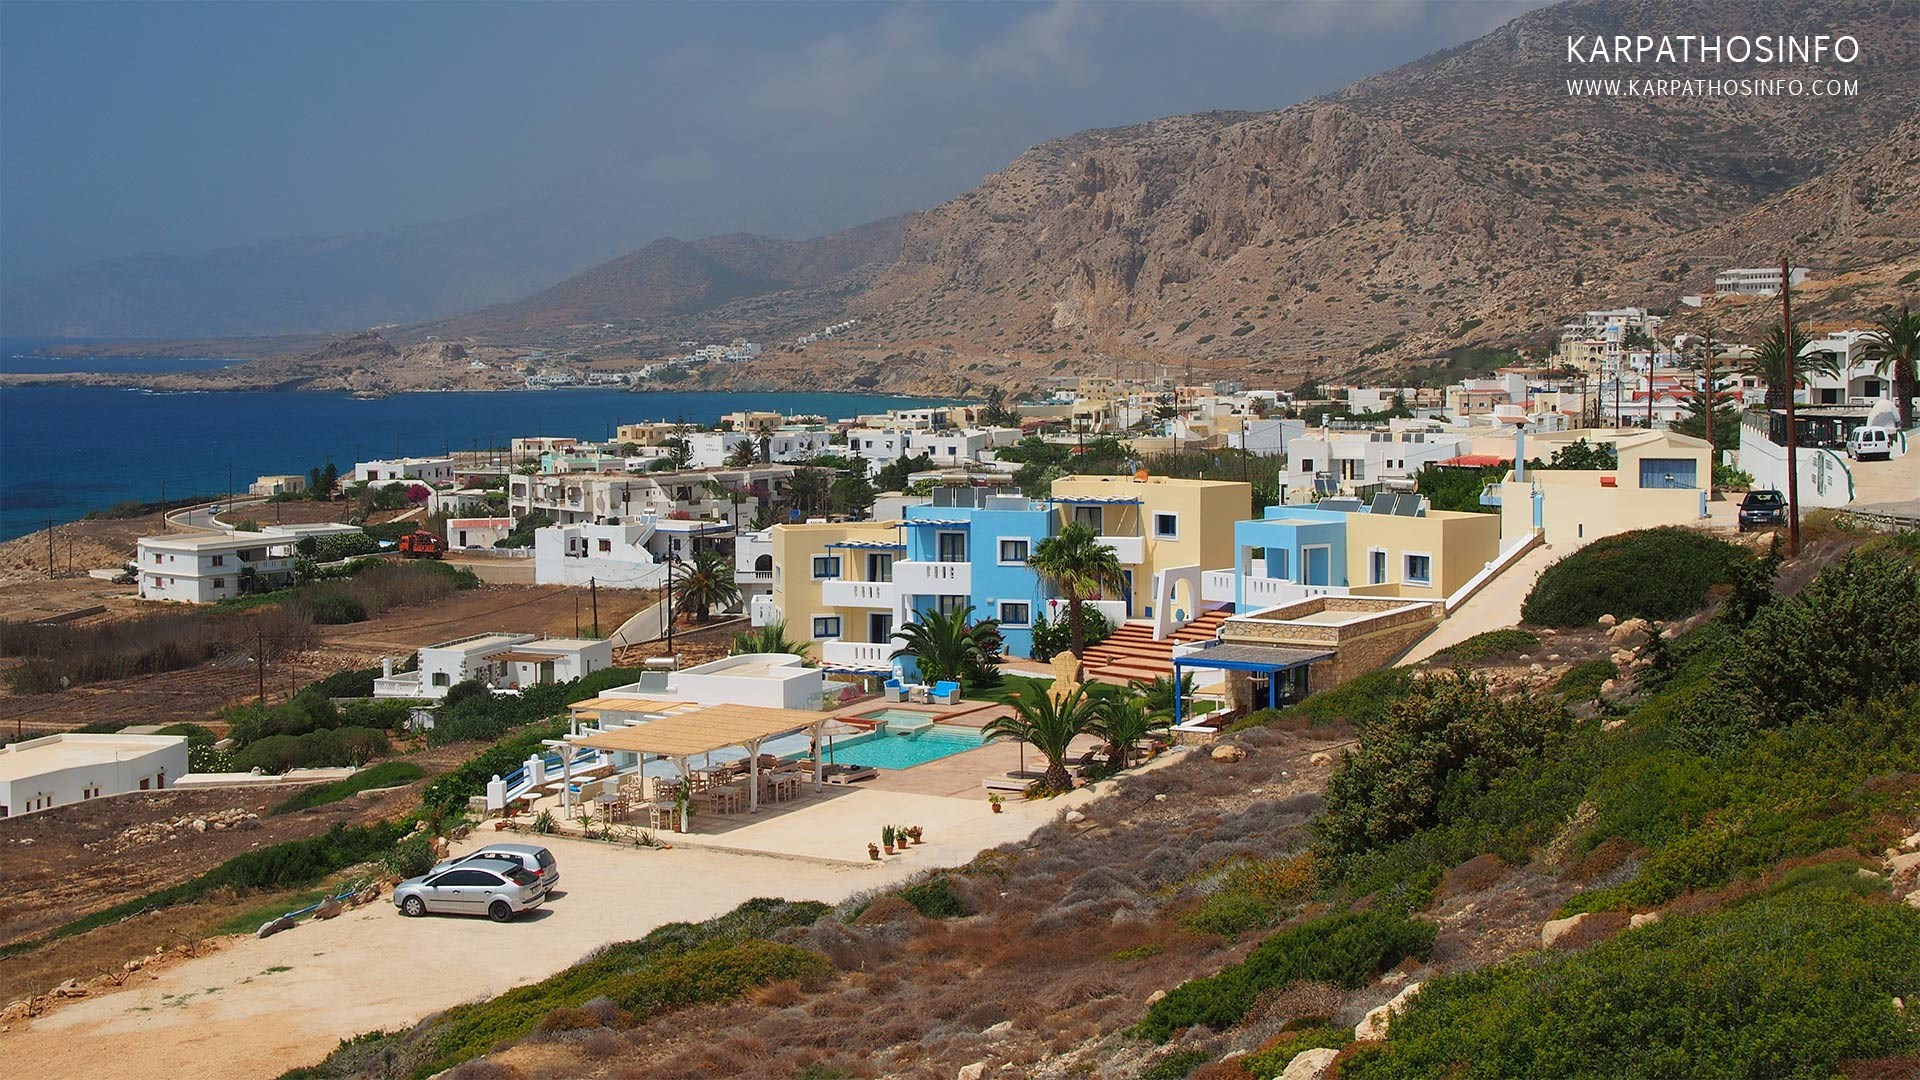 images/slider/arkasa-karpathos-slider.jpg